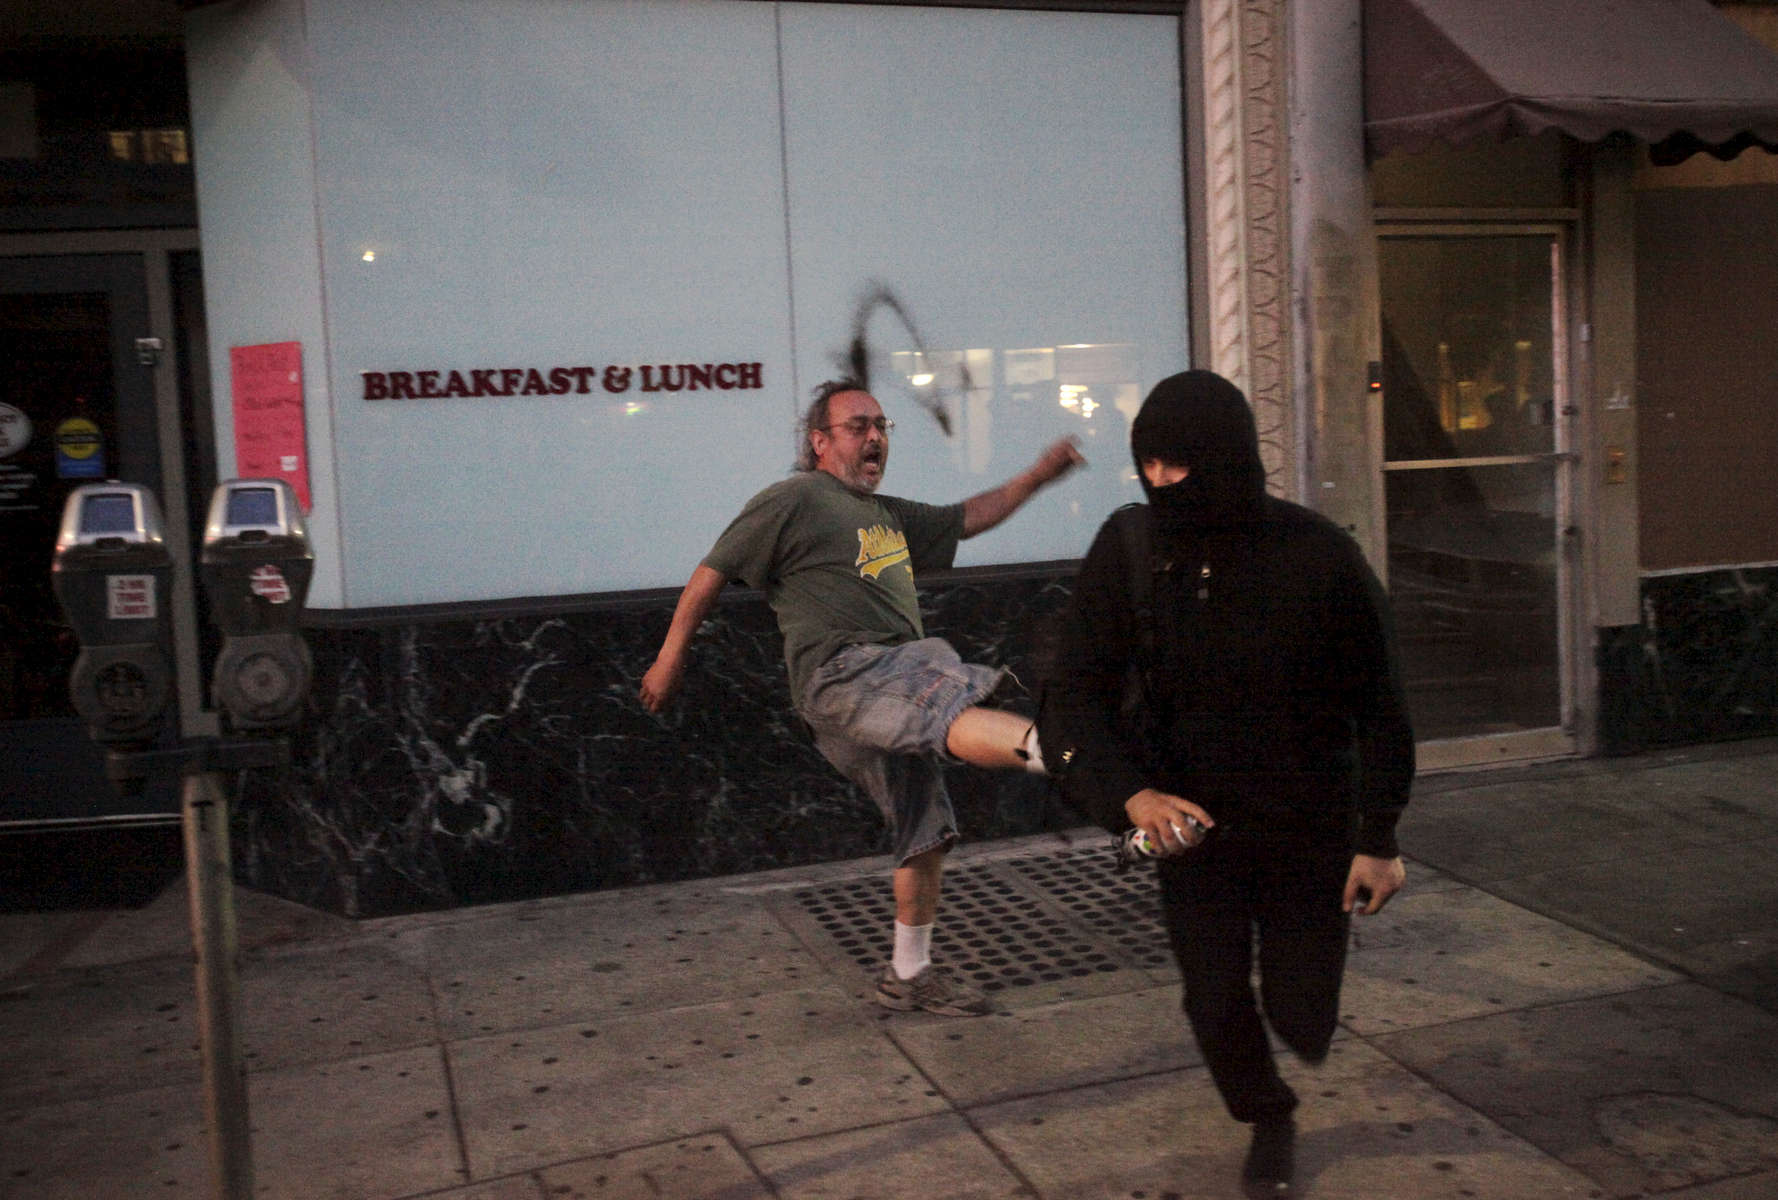 Ralph Guerra, 53, runs off a protester after the person tried to spray paint on a window during an {quote}F the Police{quote} march held in solidarity with Ferguson, Mo., where there was a fatal shooting of an unarmed 18-year-old black man earlier in the week August 15, 2014 in Oakland, Calif.